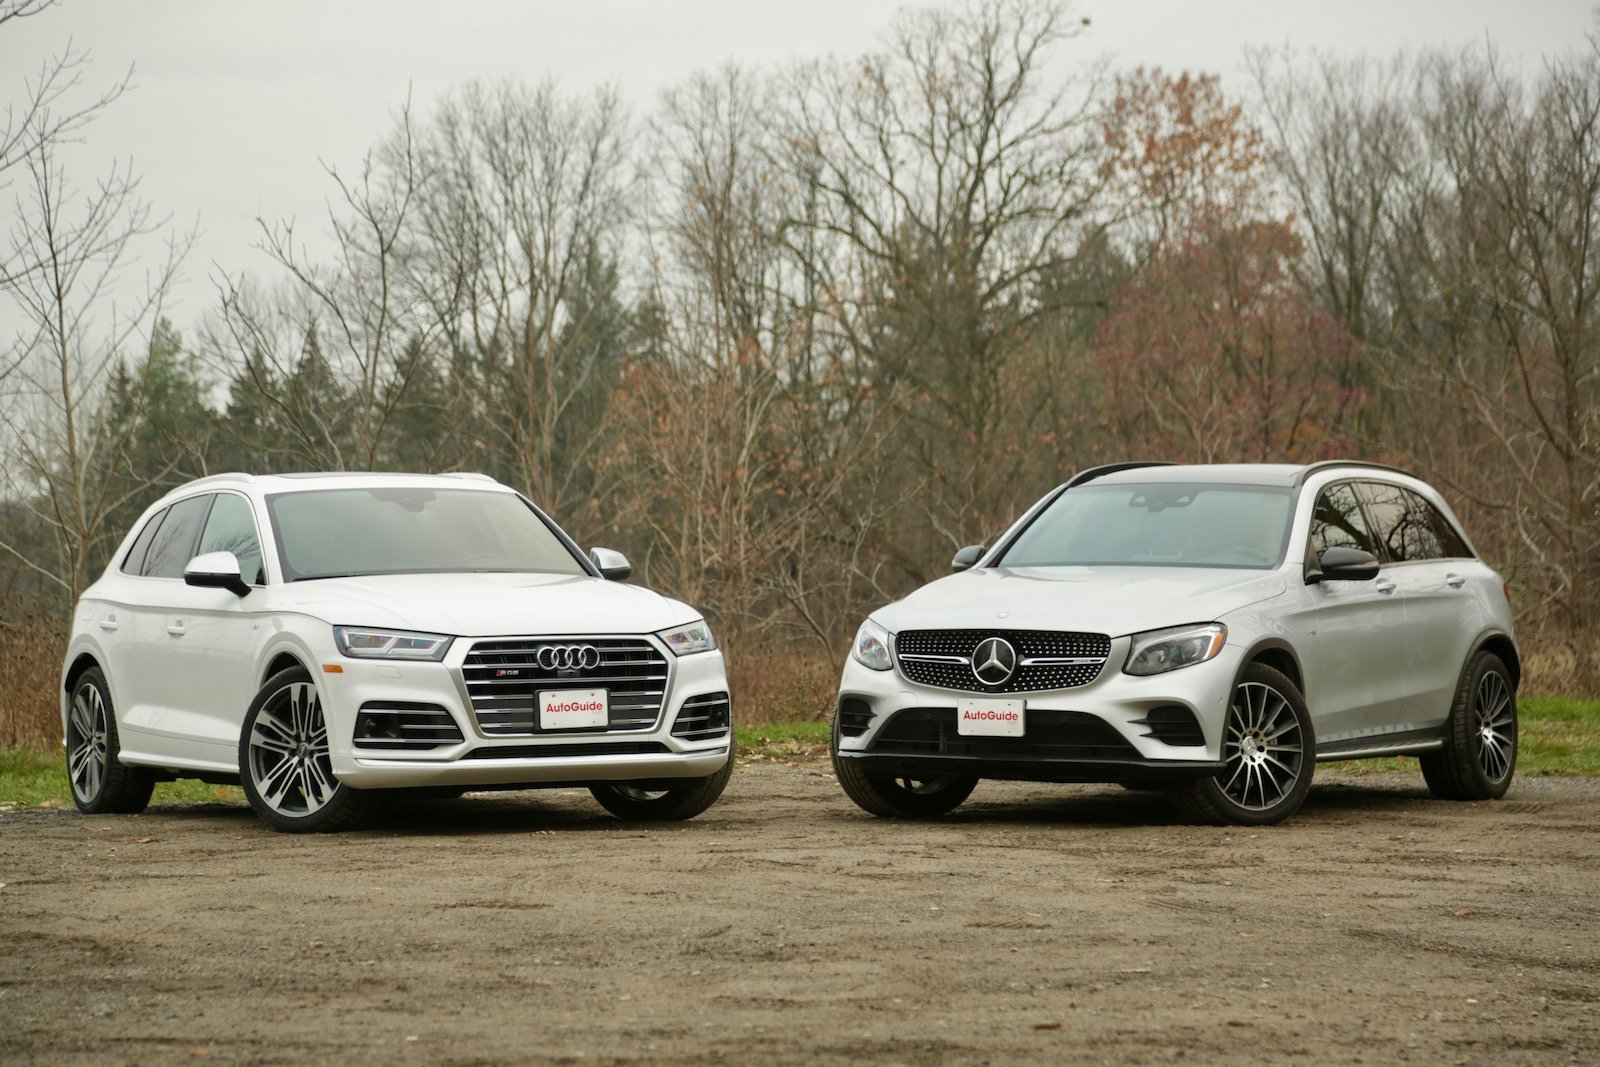 2018 Audi SQ5 vs Mercedes-AMG GLC 43 Comparison Test - AutoGuide.com